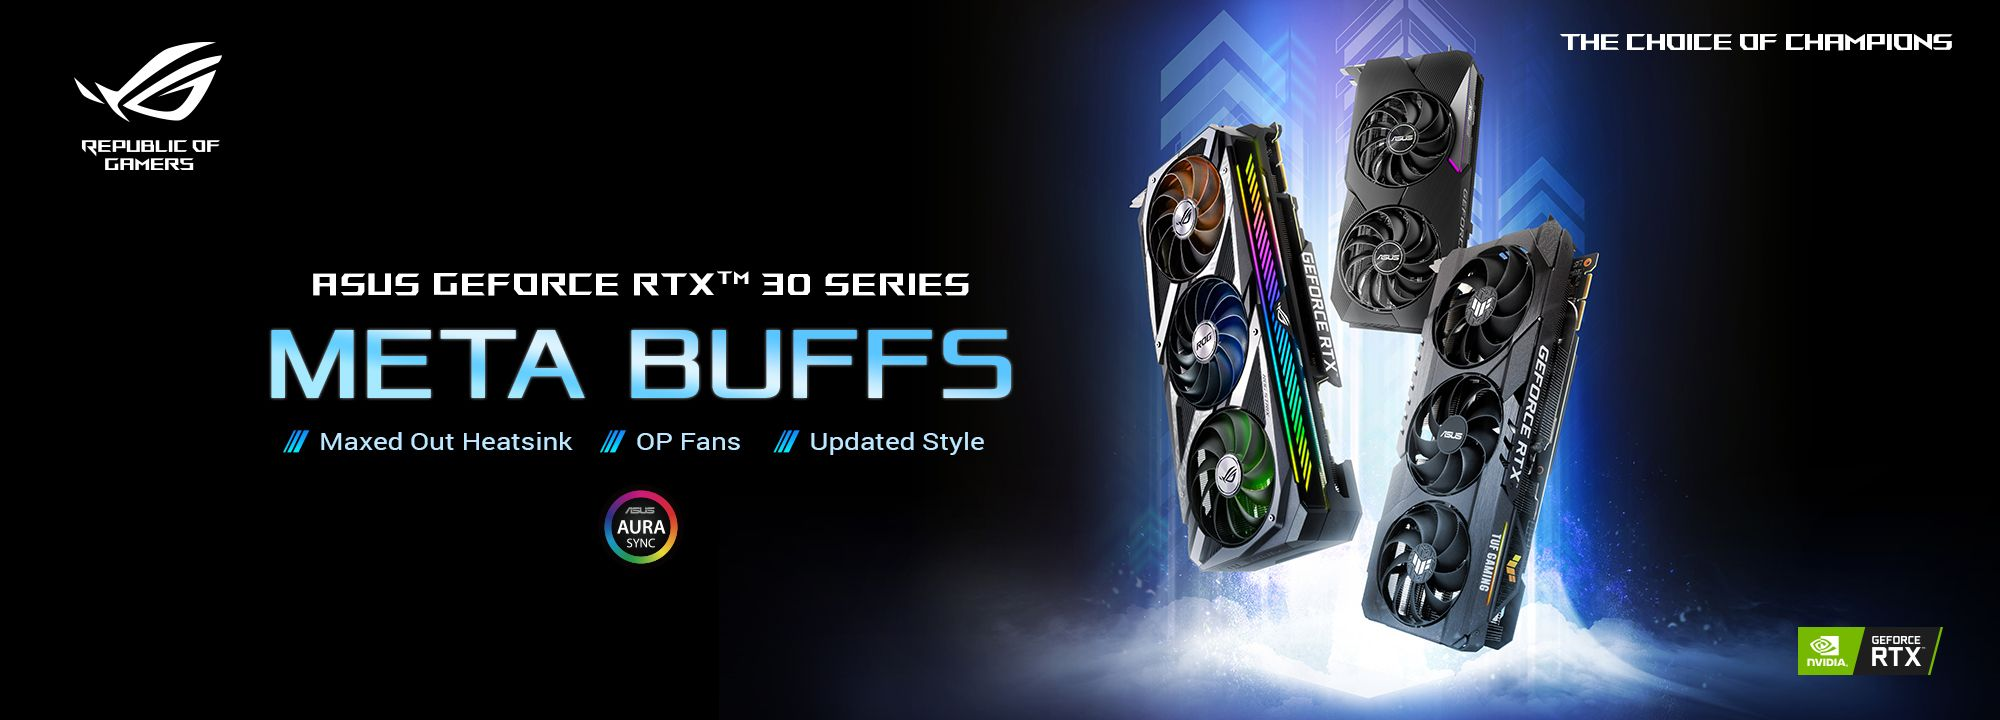 ASUS GEFORCE RTX 30